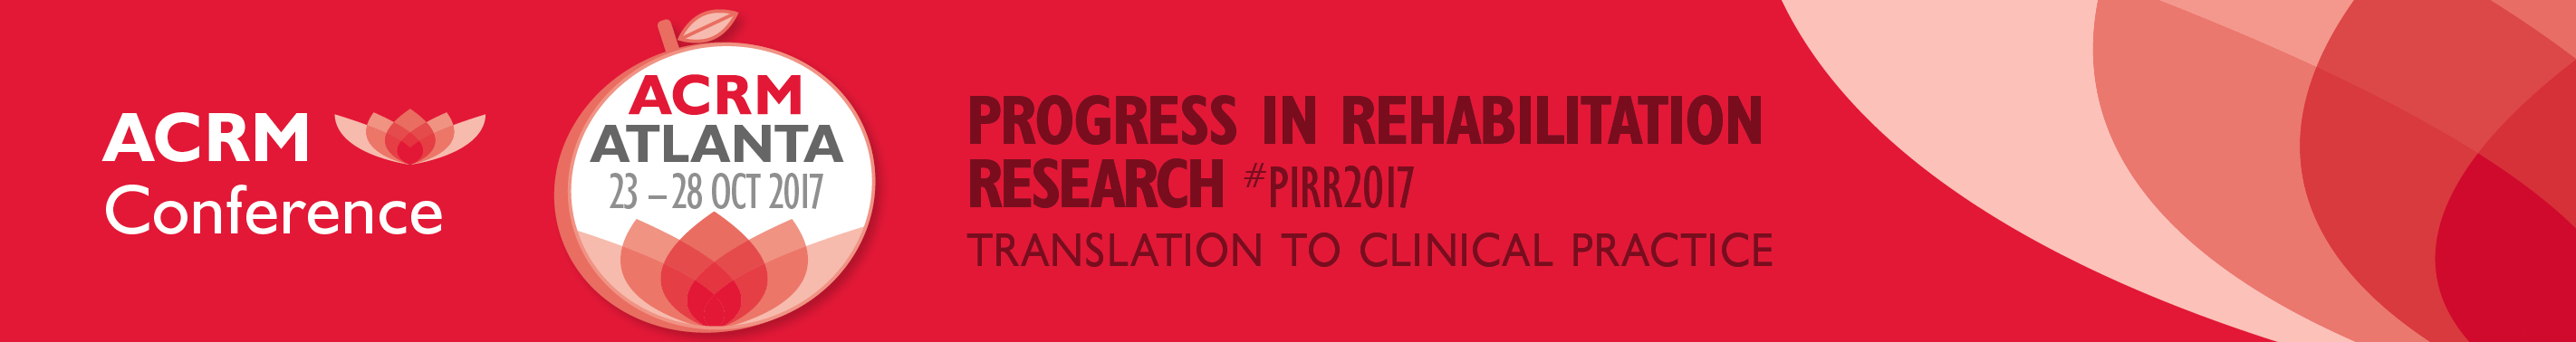 ACRM Conference: Progress in Rehabilitation Research #PIRR2017